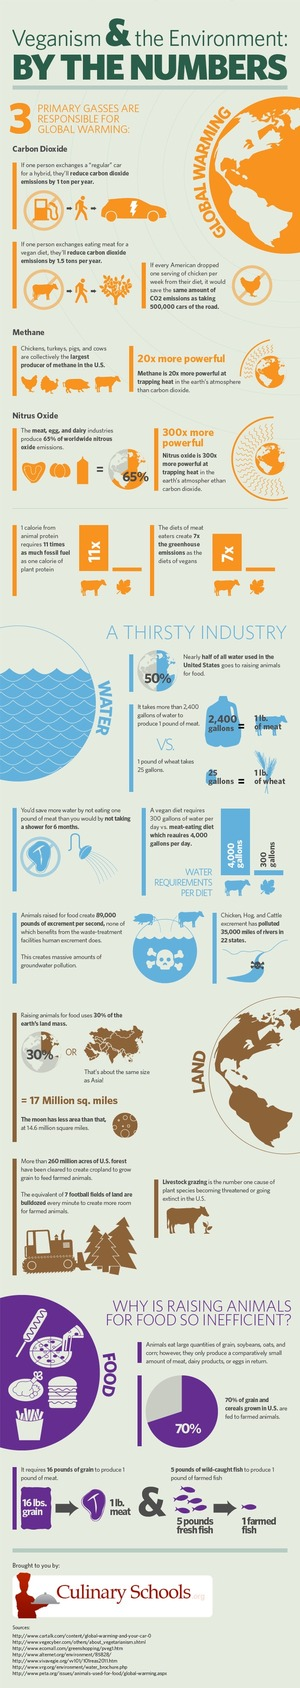 Veganism & the Environment By the Numbers [Infographic]